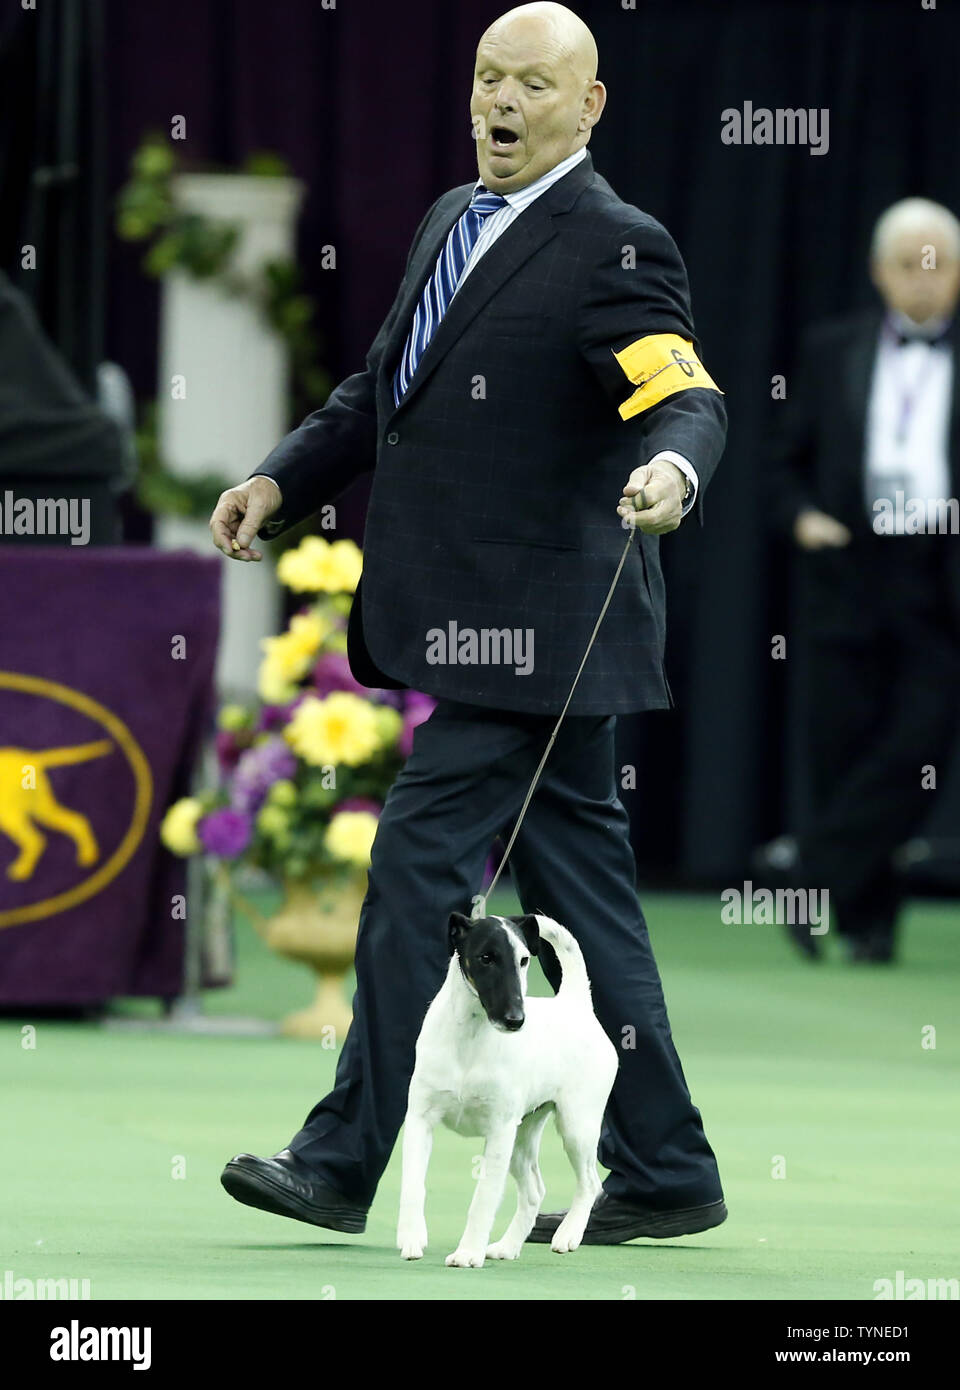 Eddie Boyes reacts when Smooth Fox Terrier Adam wins the Terrier Group at the 137th Annual Westminster Kennel Club Dog Show at Madison Square Garden in New York City on February 12, 2013.      UPI/John Angelillo Stock Photo